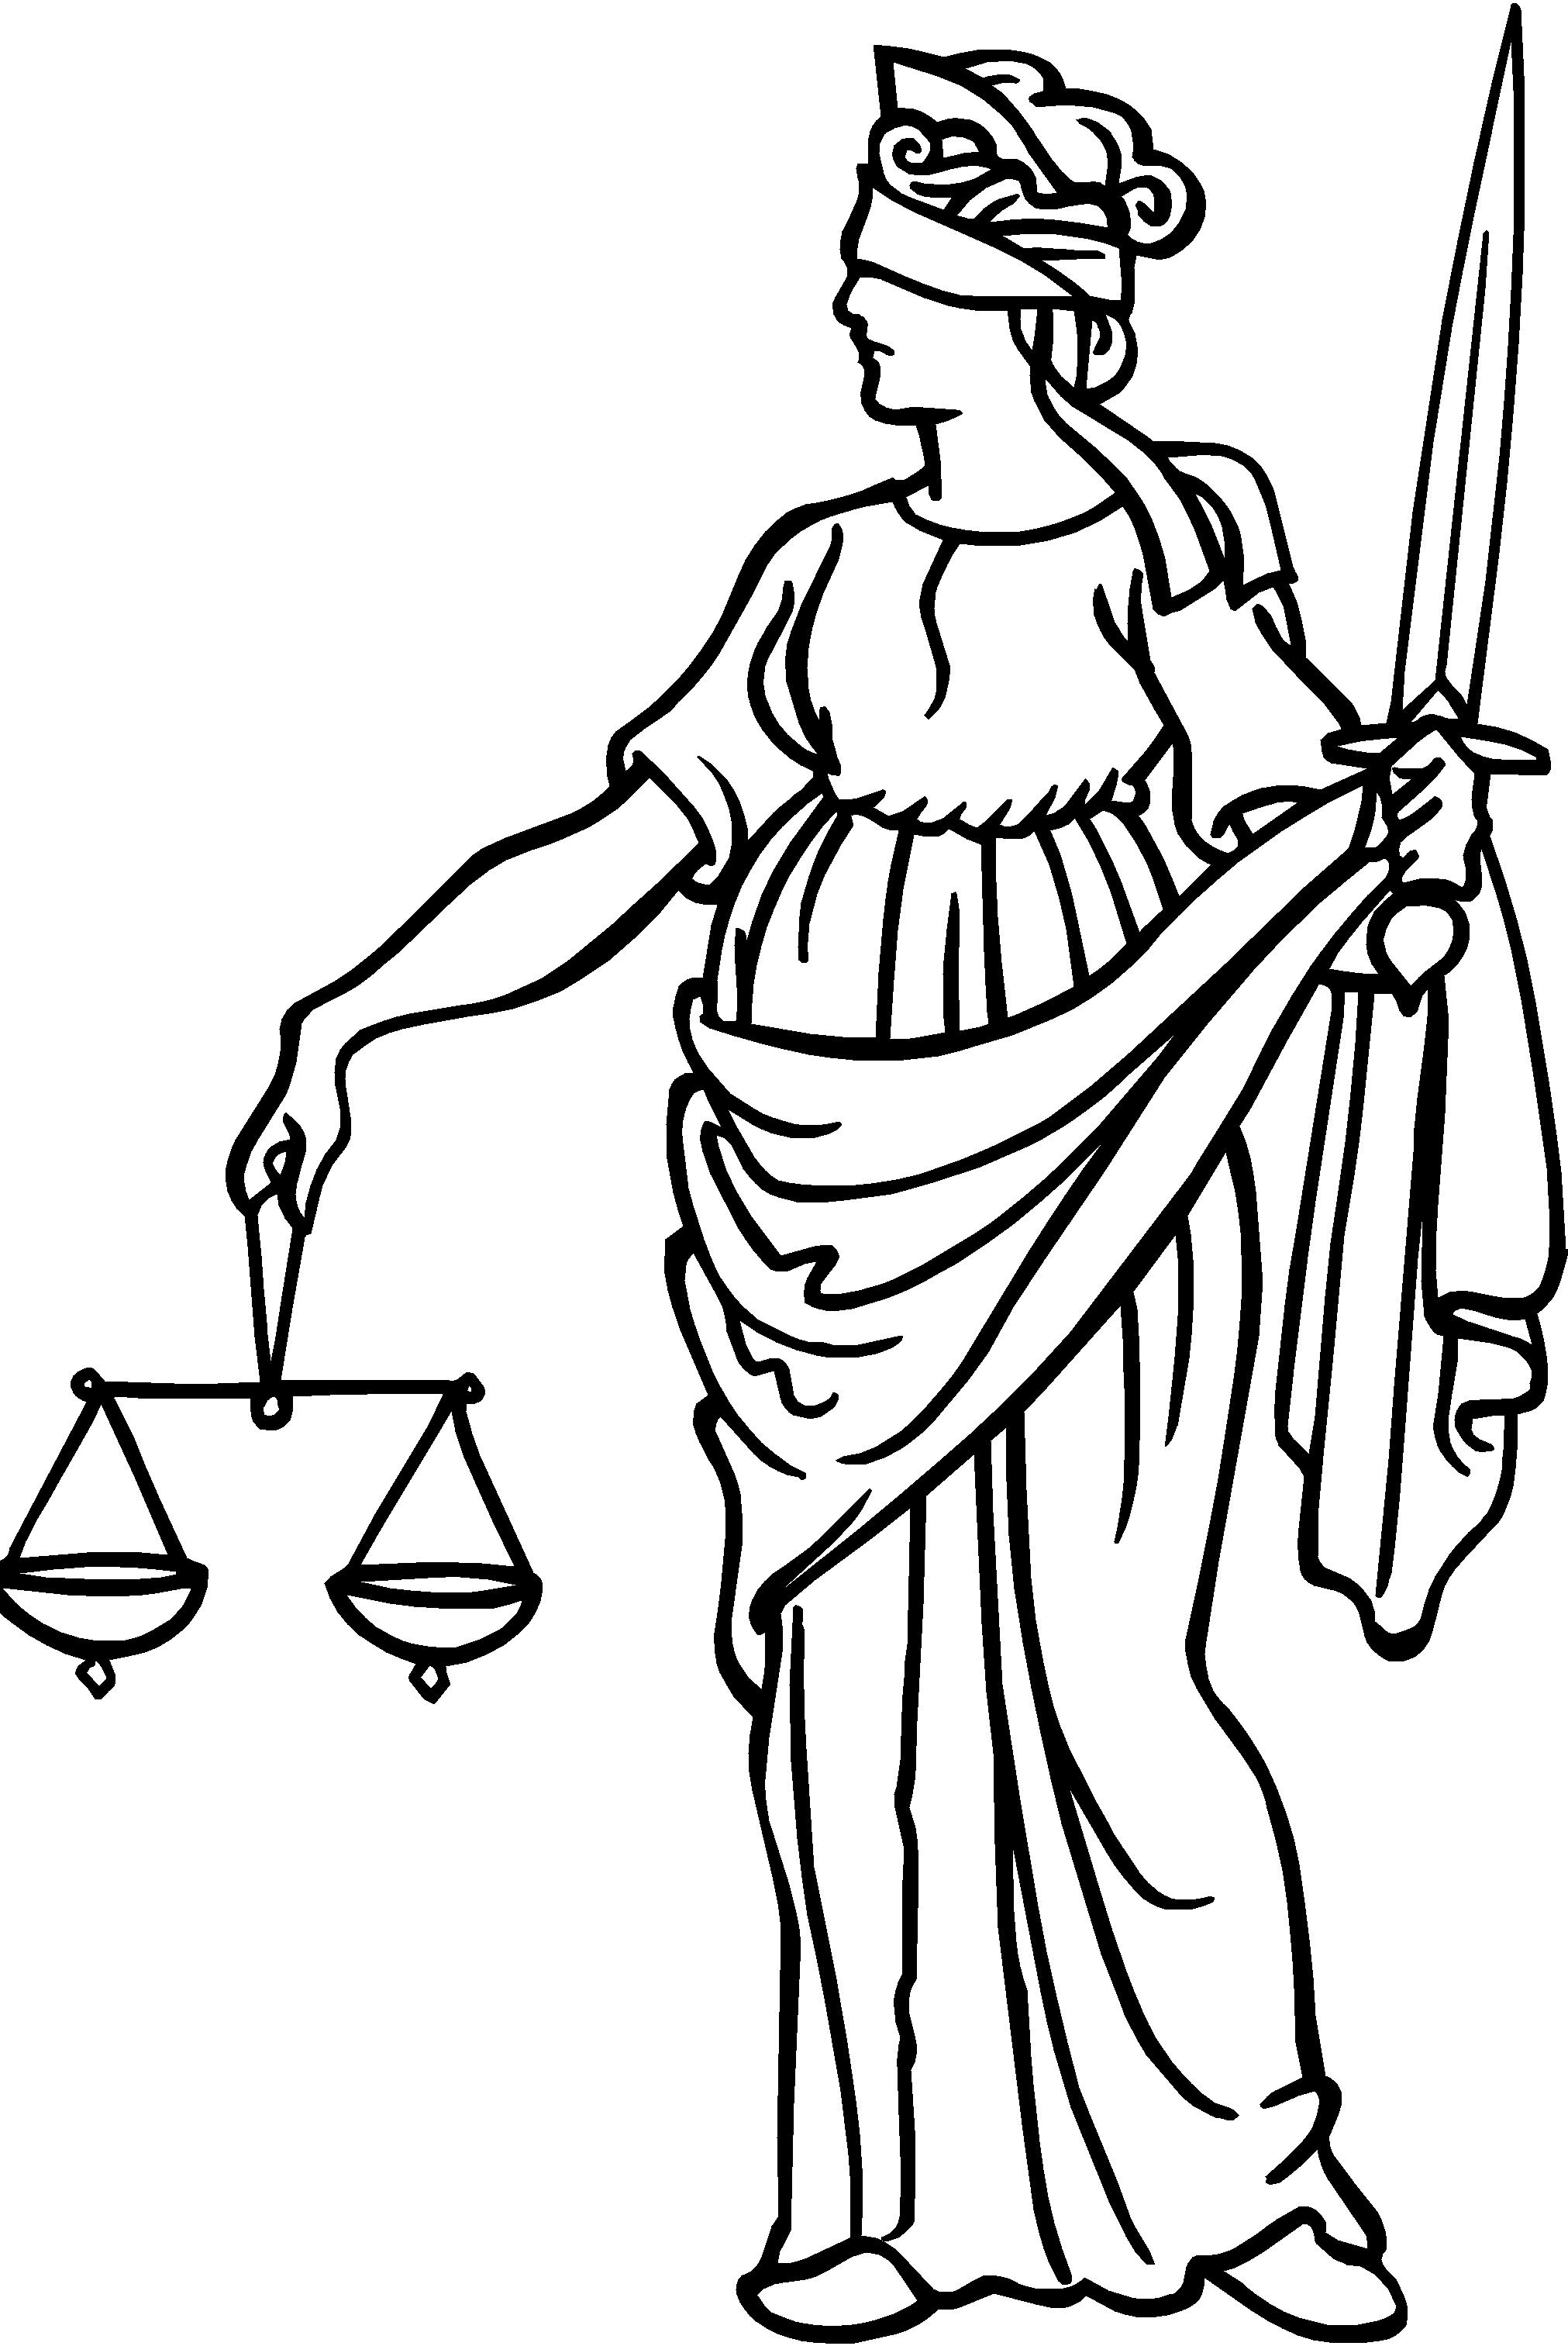 Free Clip Art Scales Of Justice : scales, justice, Scales, Justice, Clipart,, Download, Clipart, Library